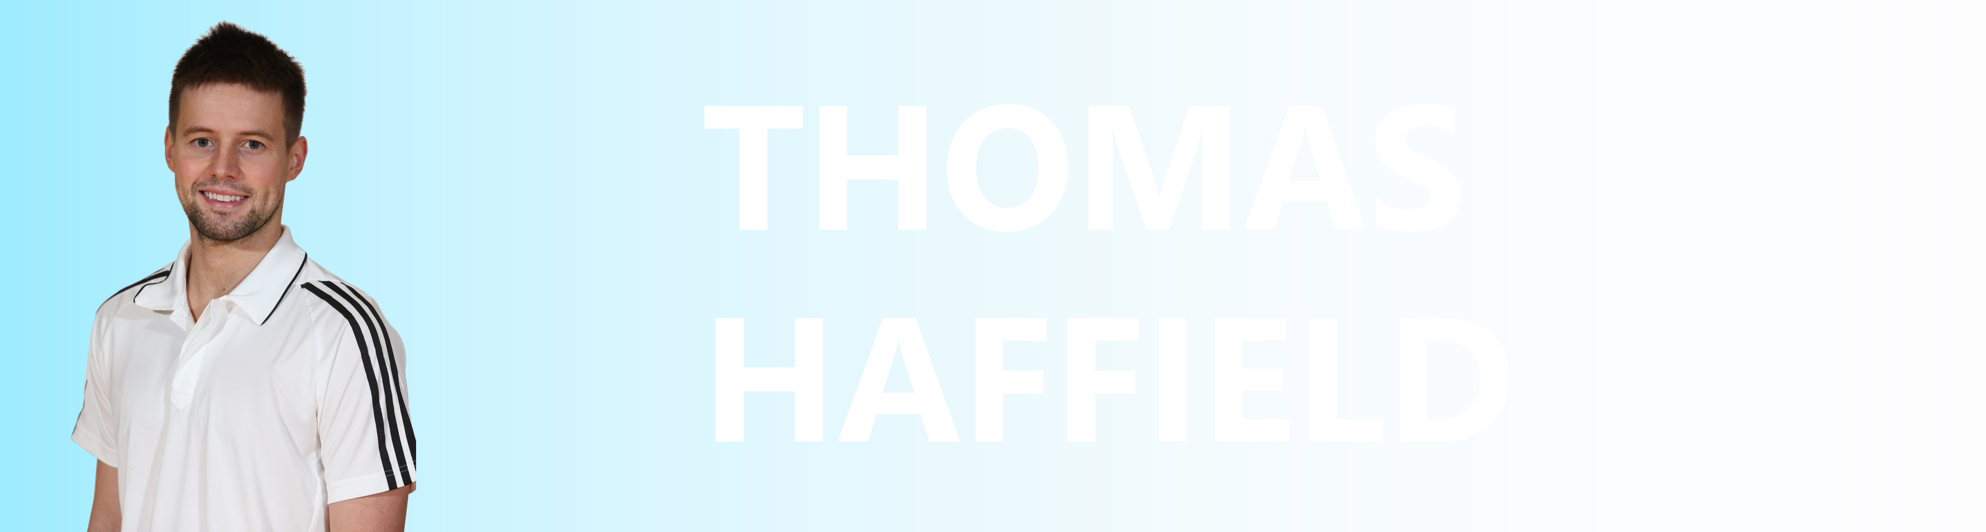 Thomas Tom Haffield SwimPath Team Profile Page